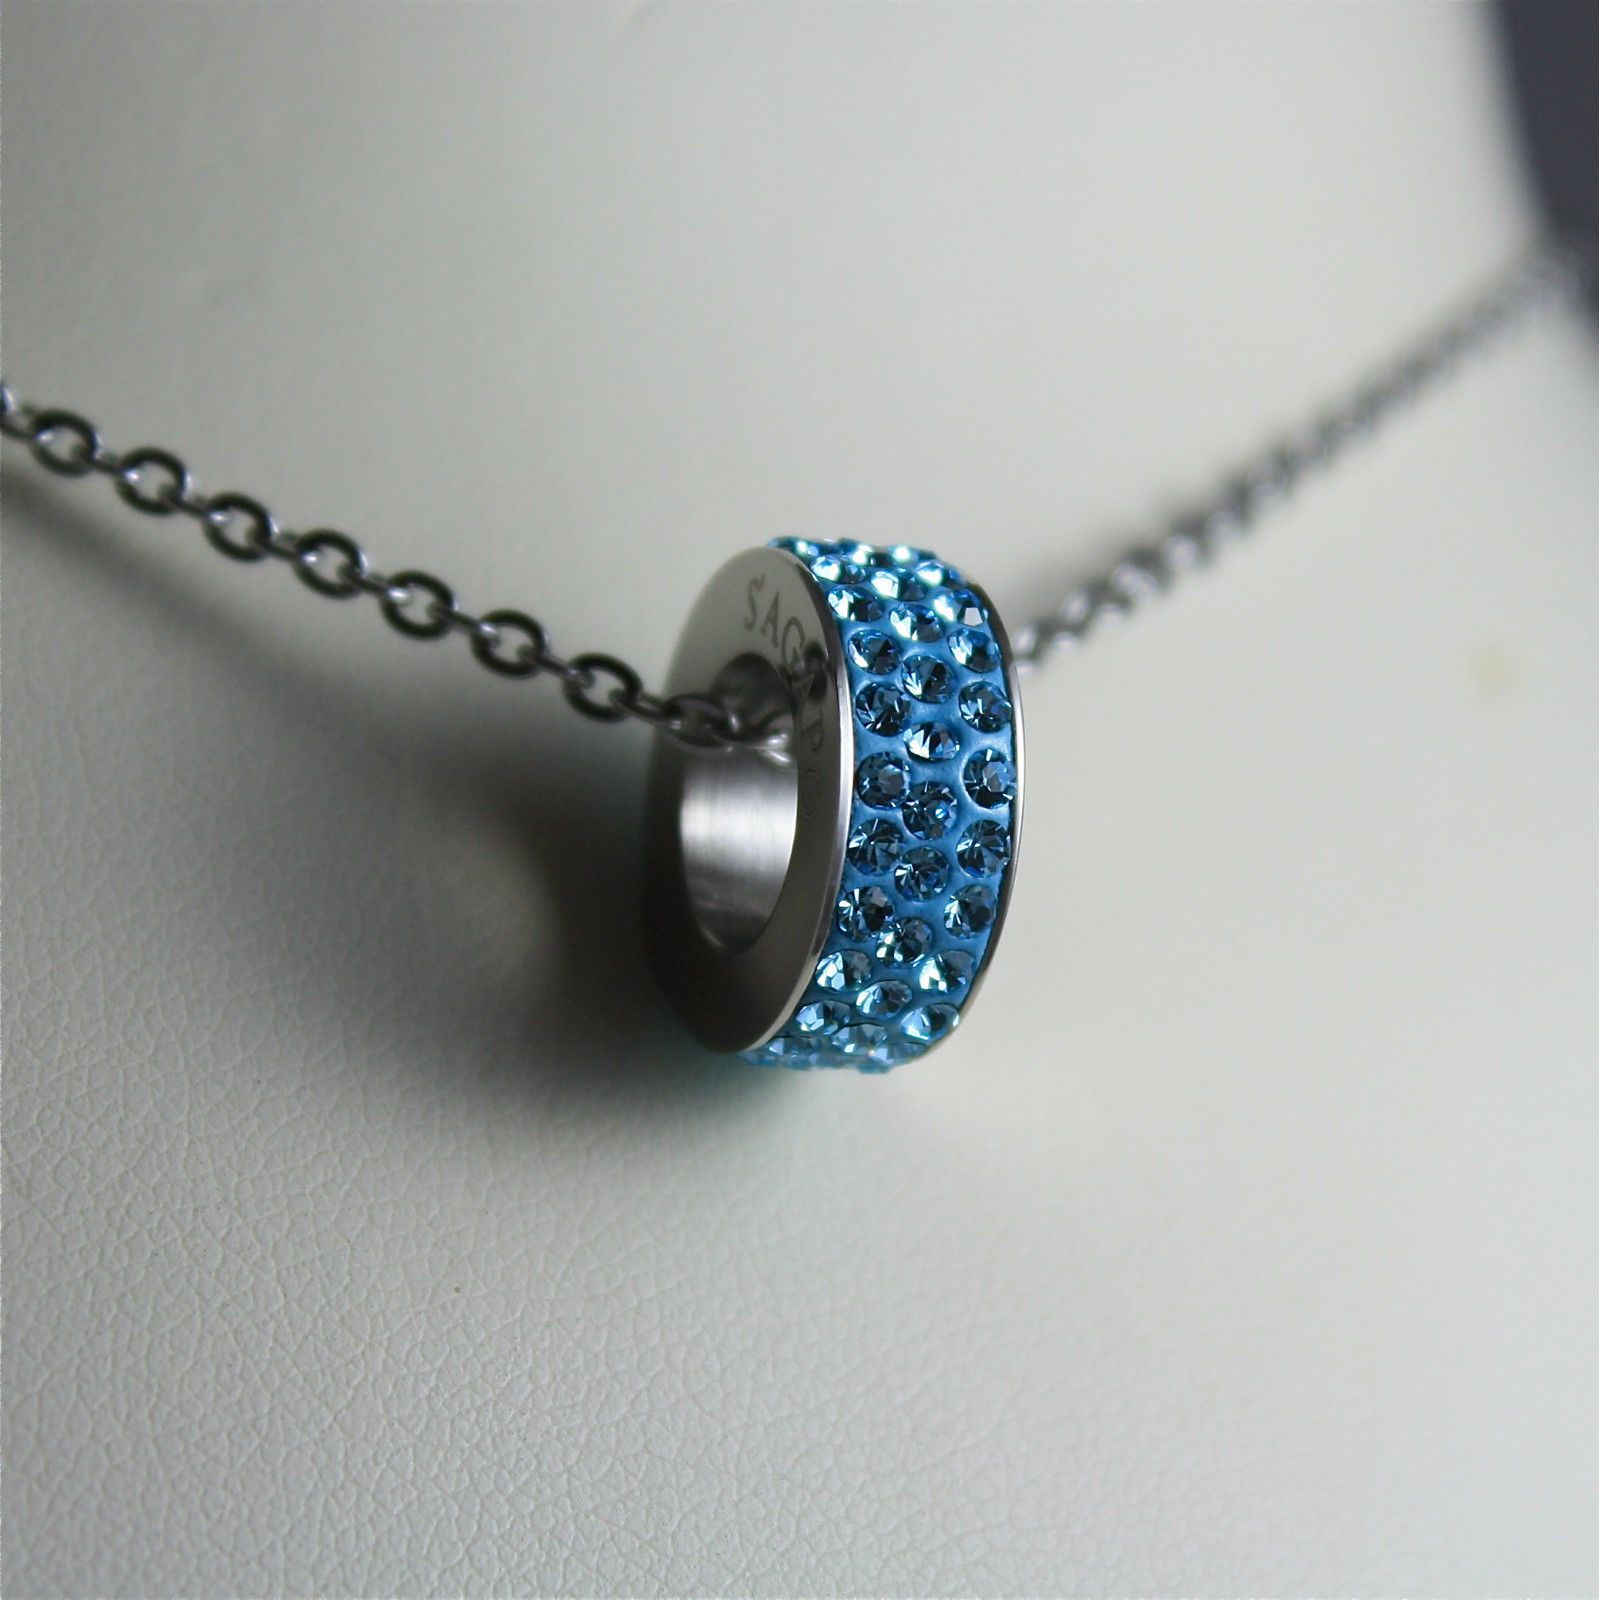 S'AGAPO' NECKLACE, 316L STEEL, LIGHT BLUE PENDANT WITH FACETED CRYSTALS.